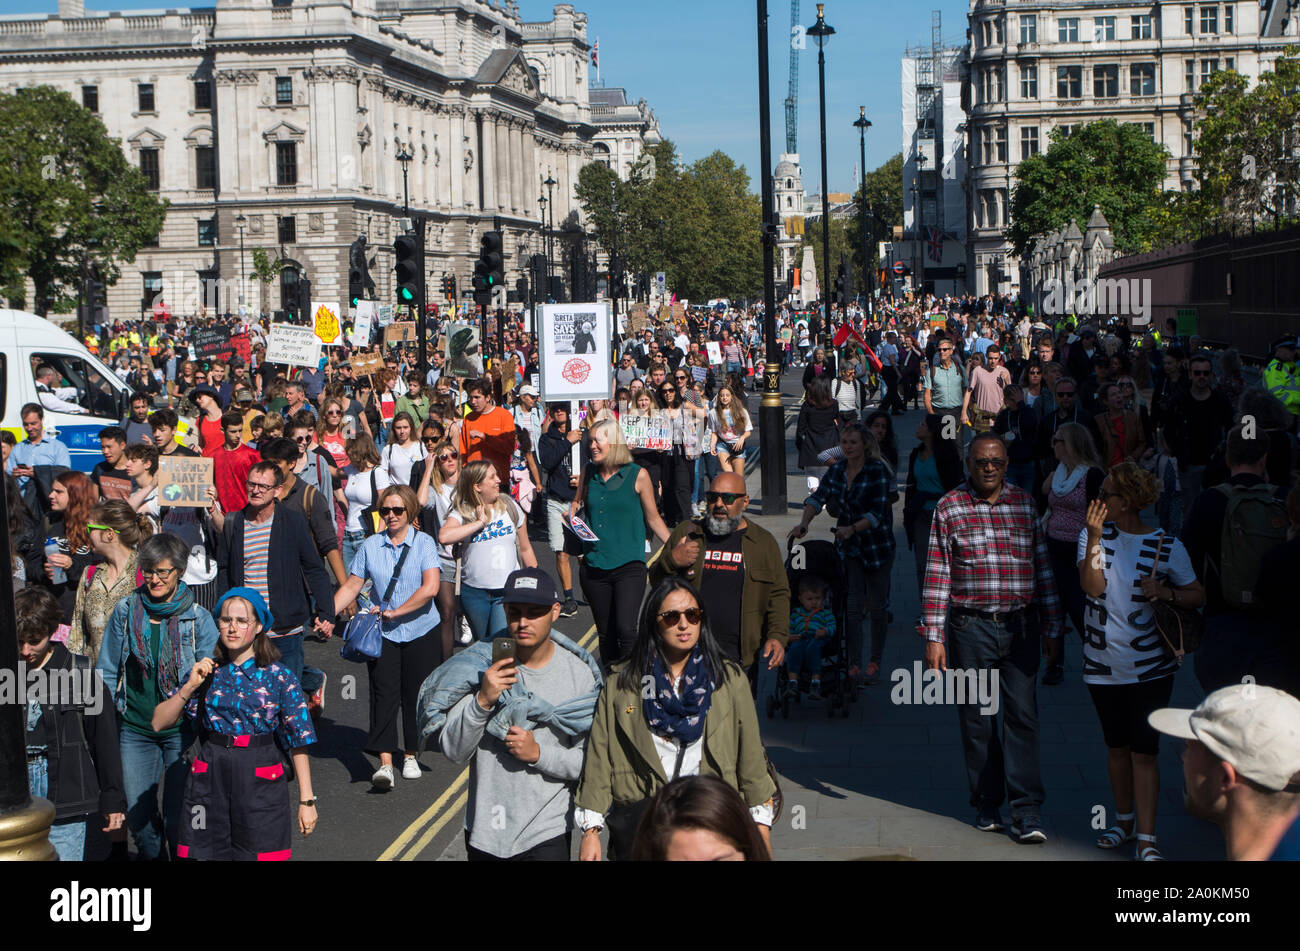 London, UK. 20 September 2019. Around 100,000 people, led by school children on strike, protested in Westminster, London, calling for urgent action to combat the climate crisis. Similar protests were held across the UK, and around the World. © Stuart Walden/ Alamy Stock Photo